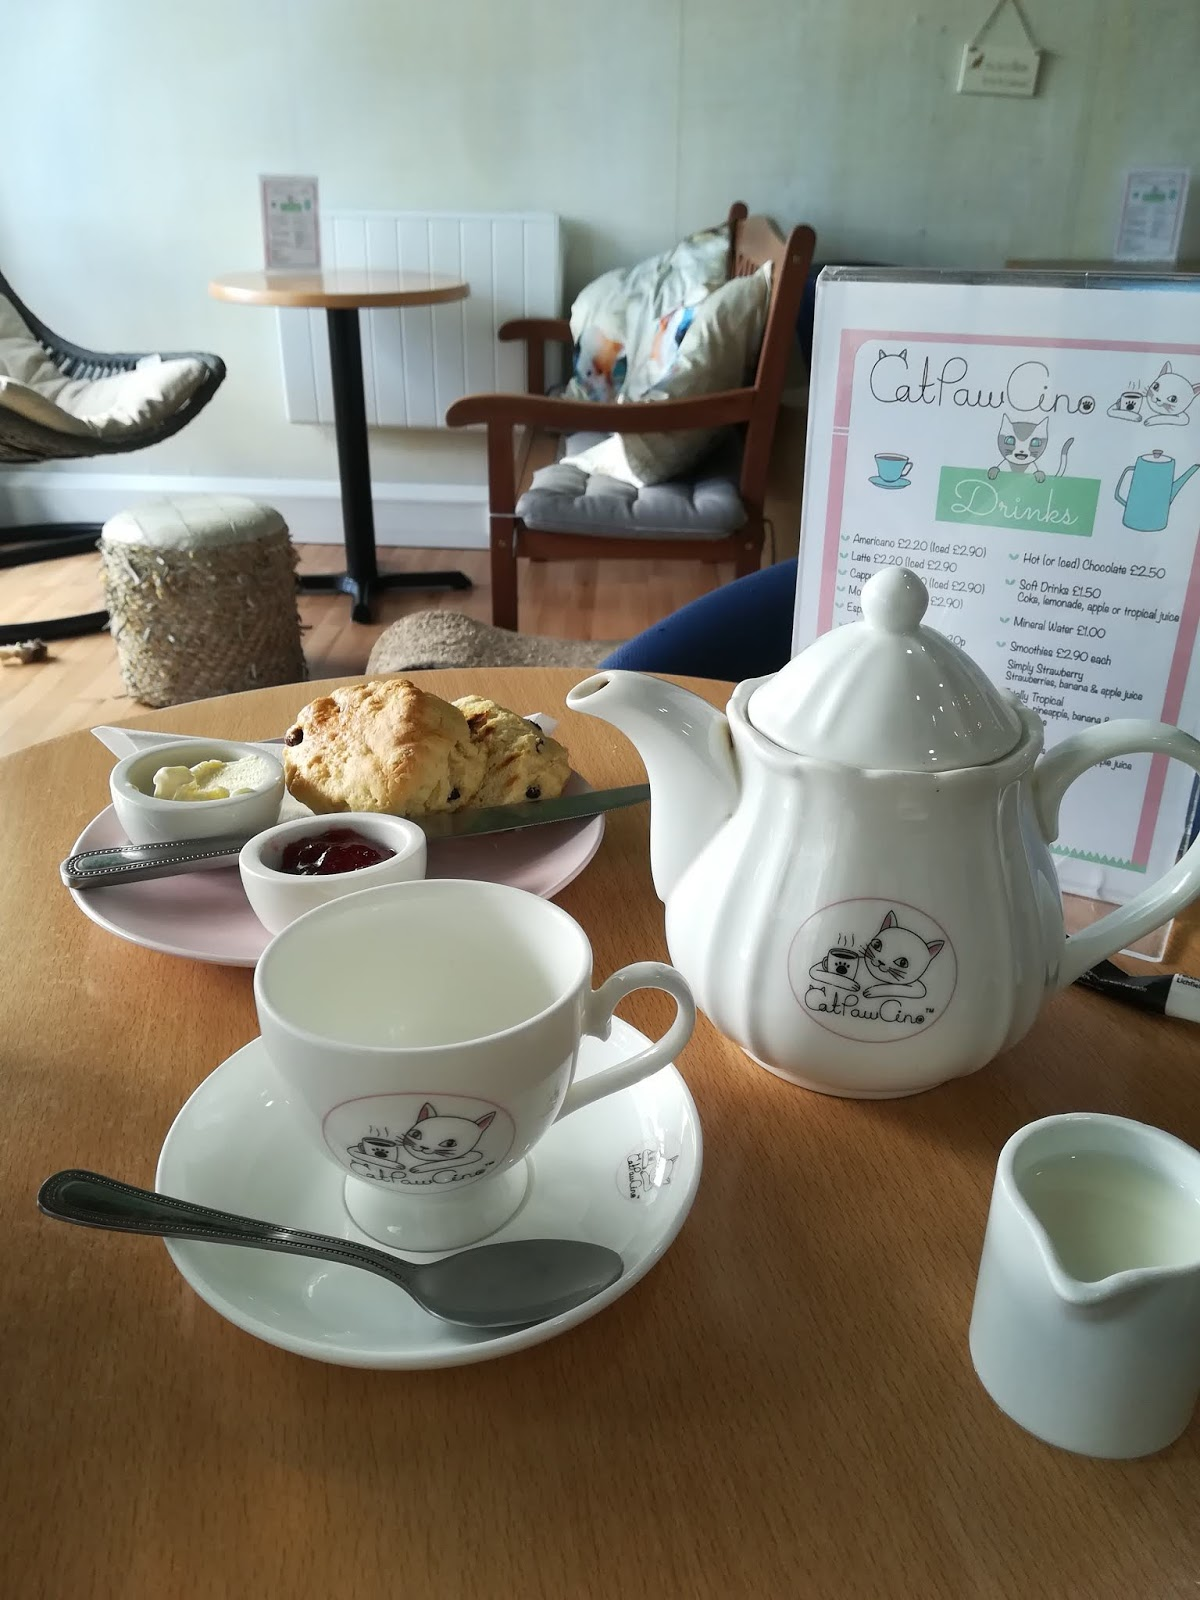 CatPawCino | Visiting a Cat Café in Newcastle with Kids - scones and tea